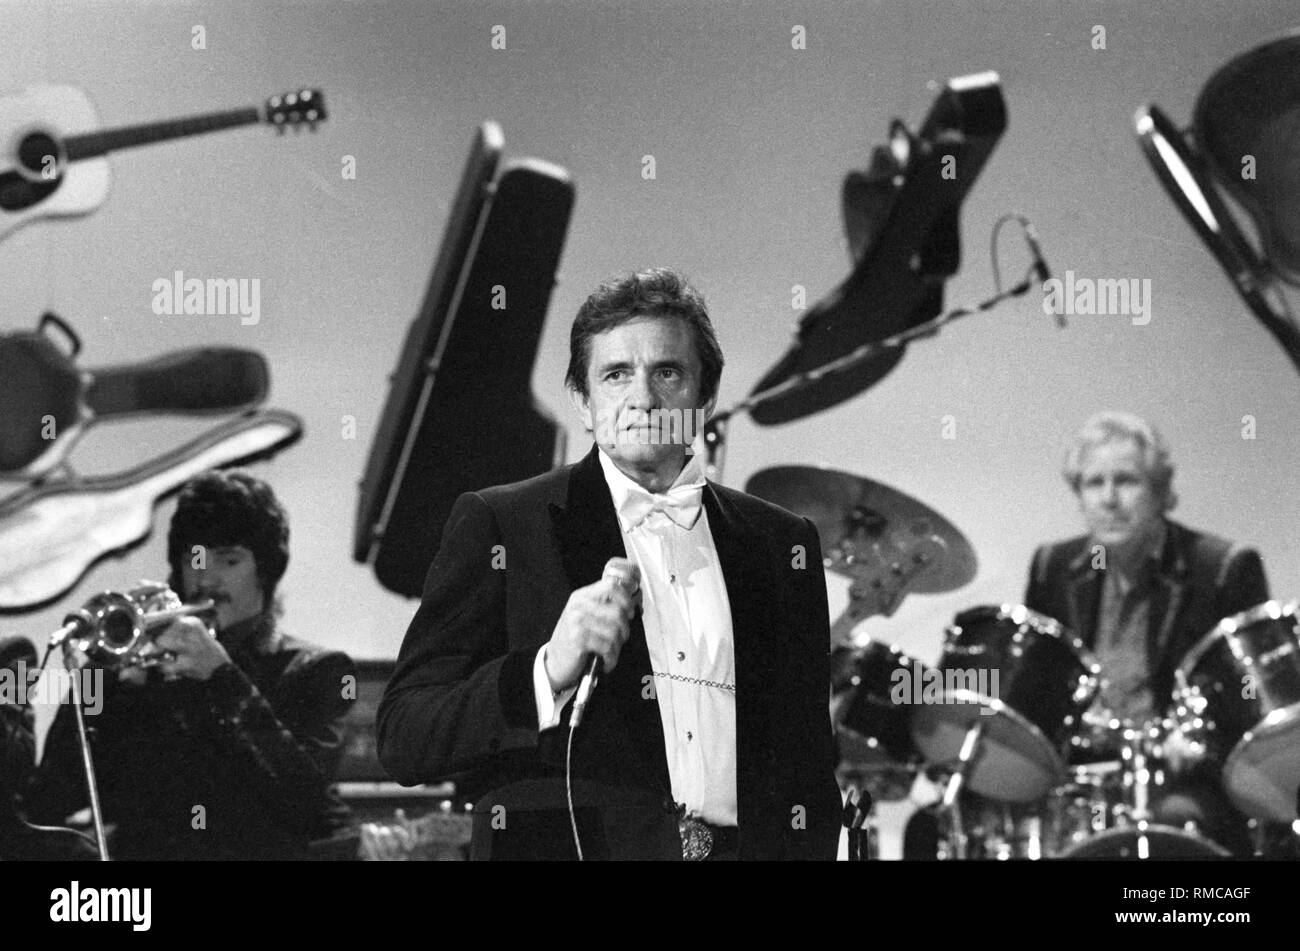 The American country singer Johnny Cash (photo from the early 80s) died on September 12, 2003 at the age of 71 years. Since 1997, he has suffered from Arkansas autonomic neuropathy, a rare nerve disease associated with diabetes. - Stock Image